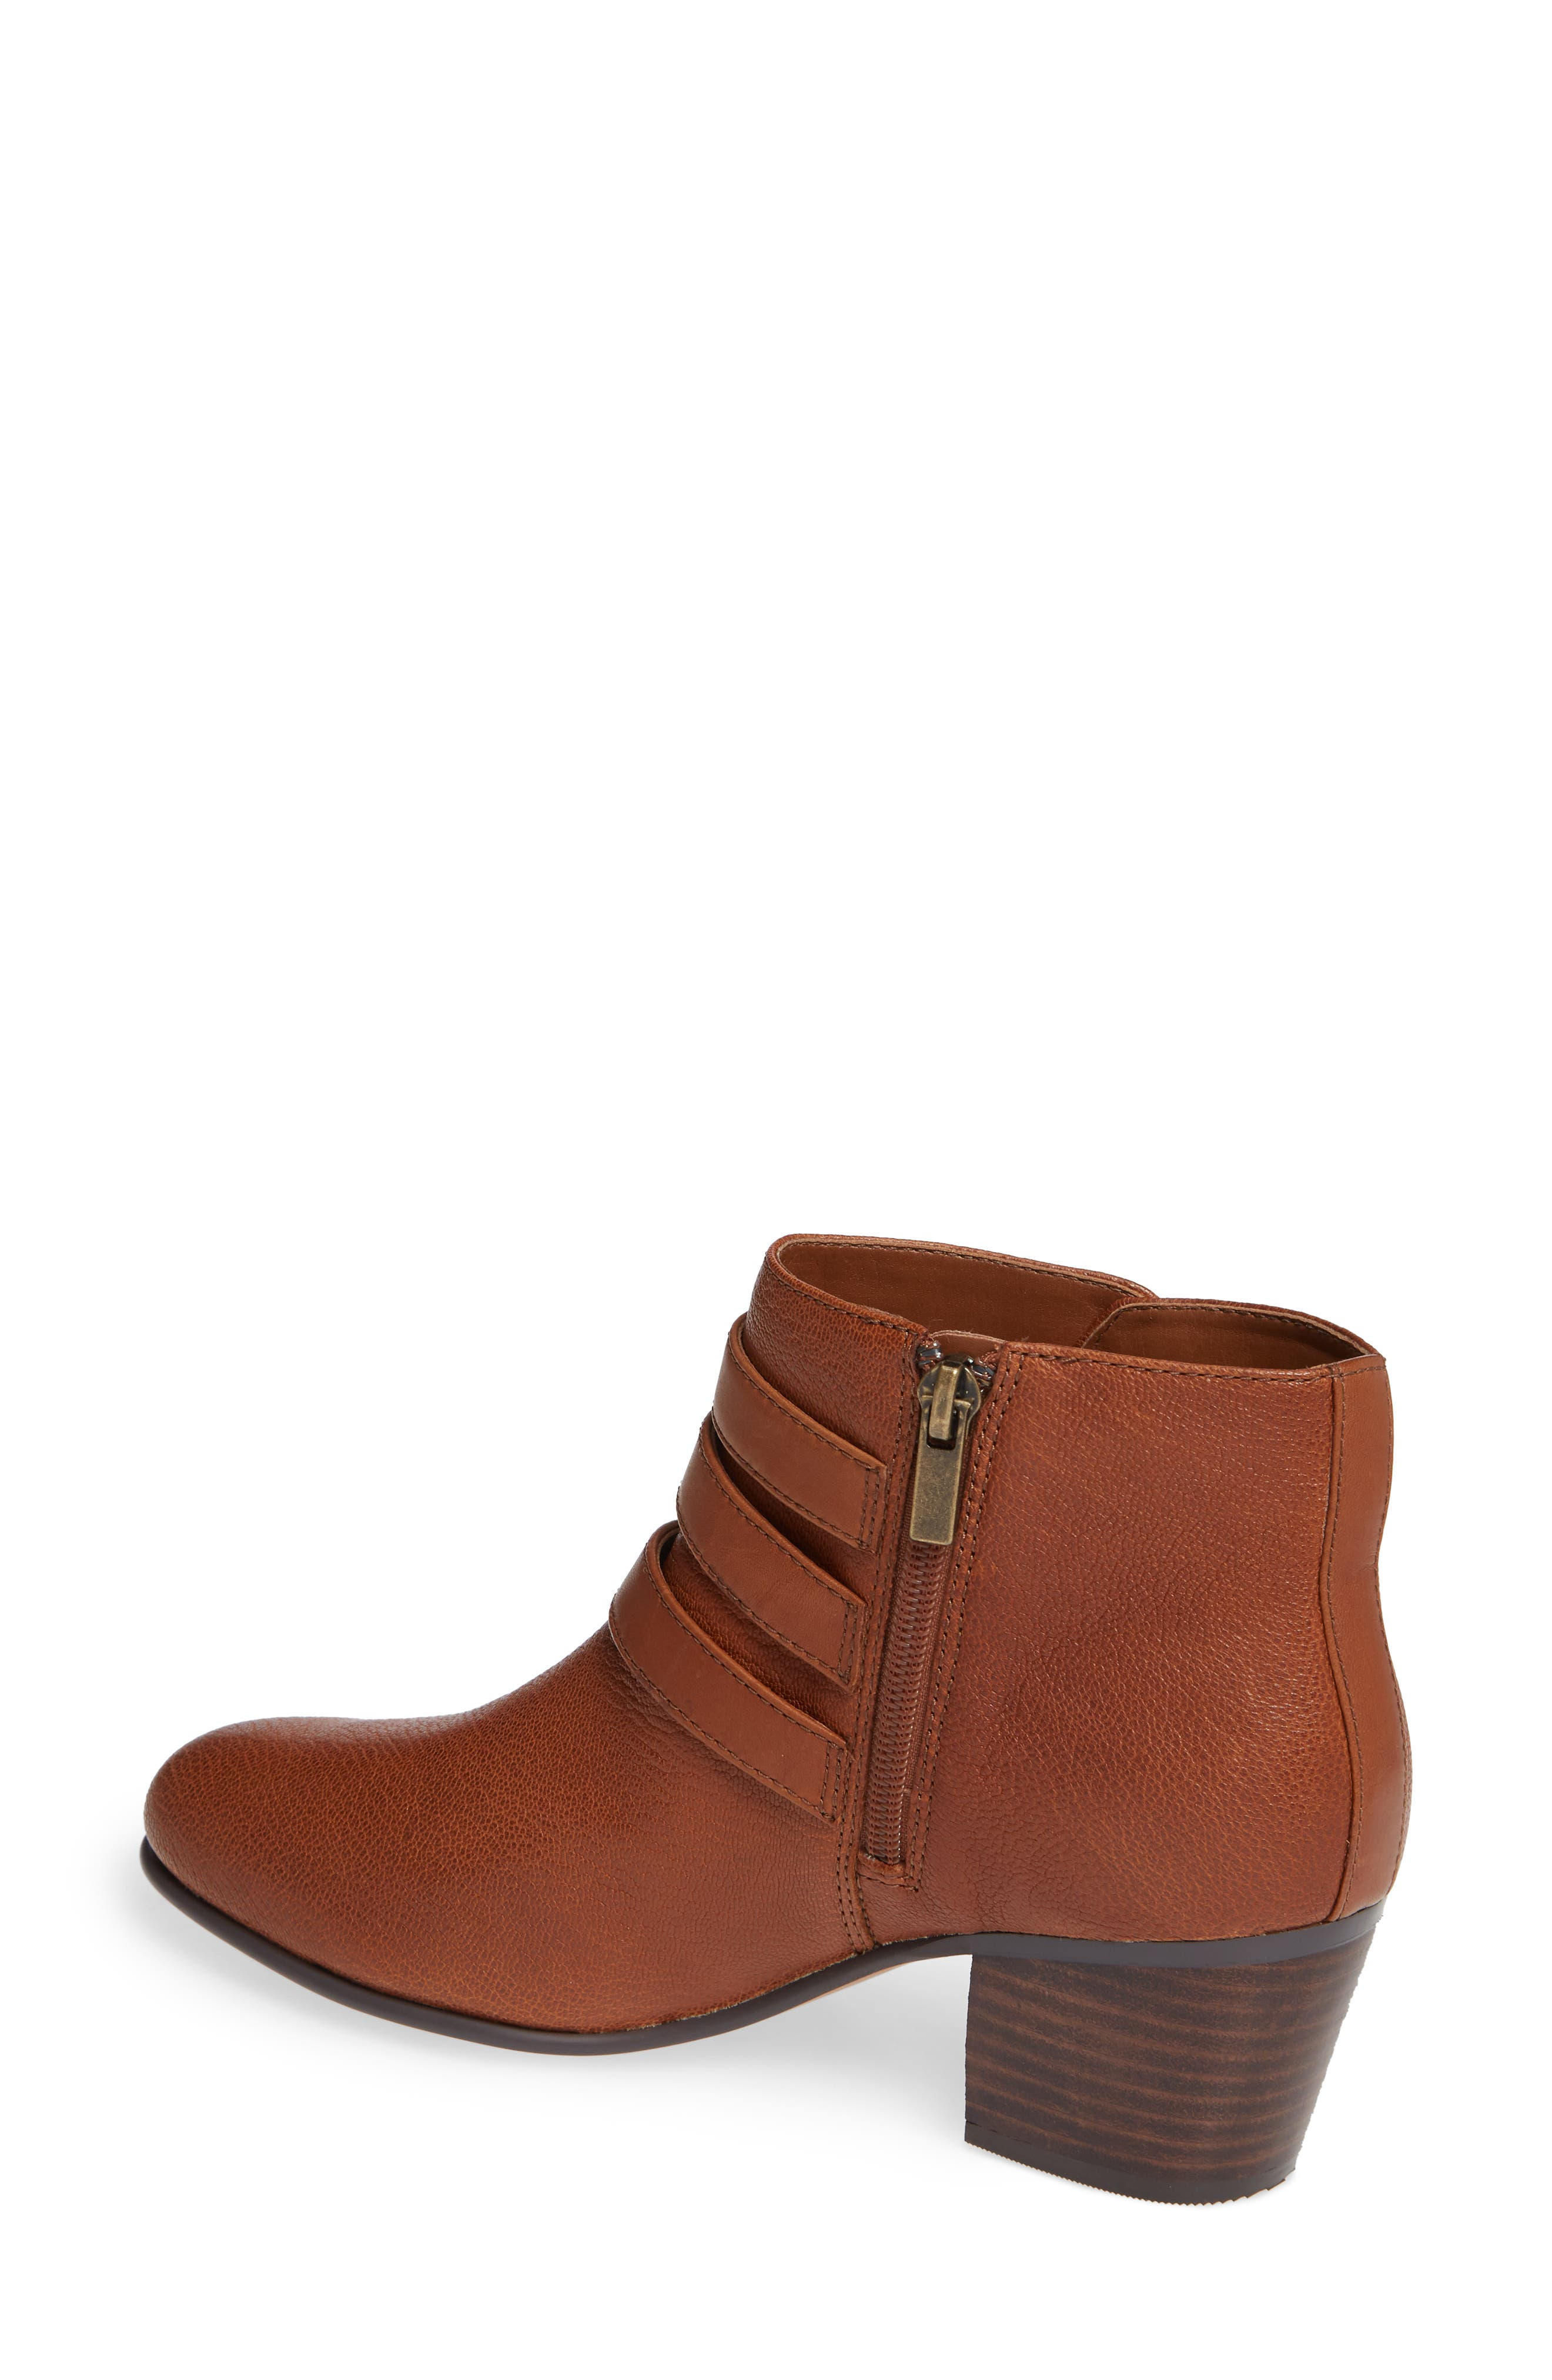 Maypearl Rayna Boot,                             Alternate thumbnail 2, color,                             DARK TAN LEATHER